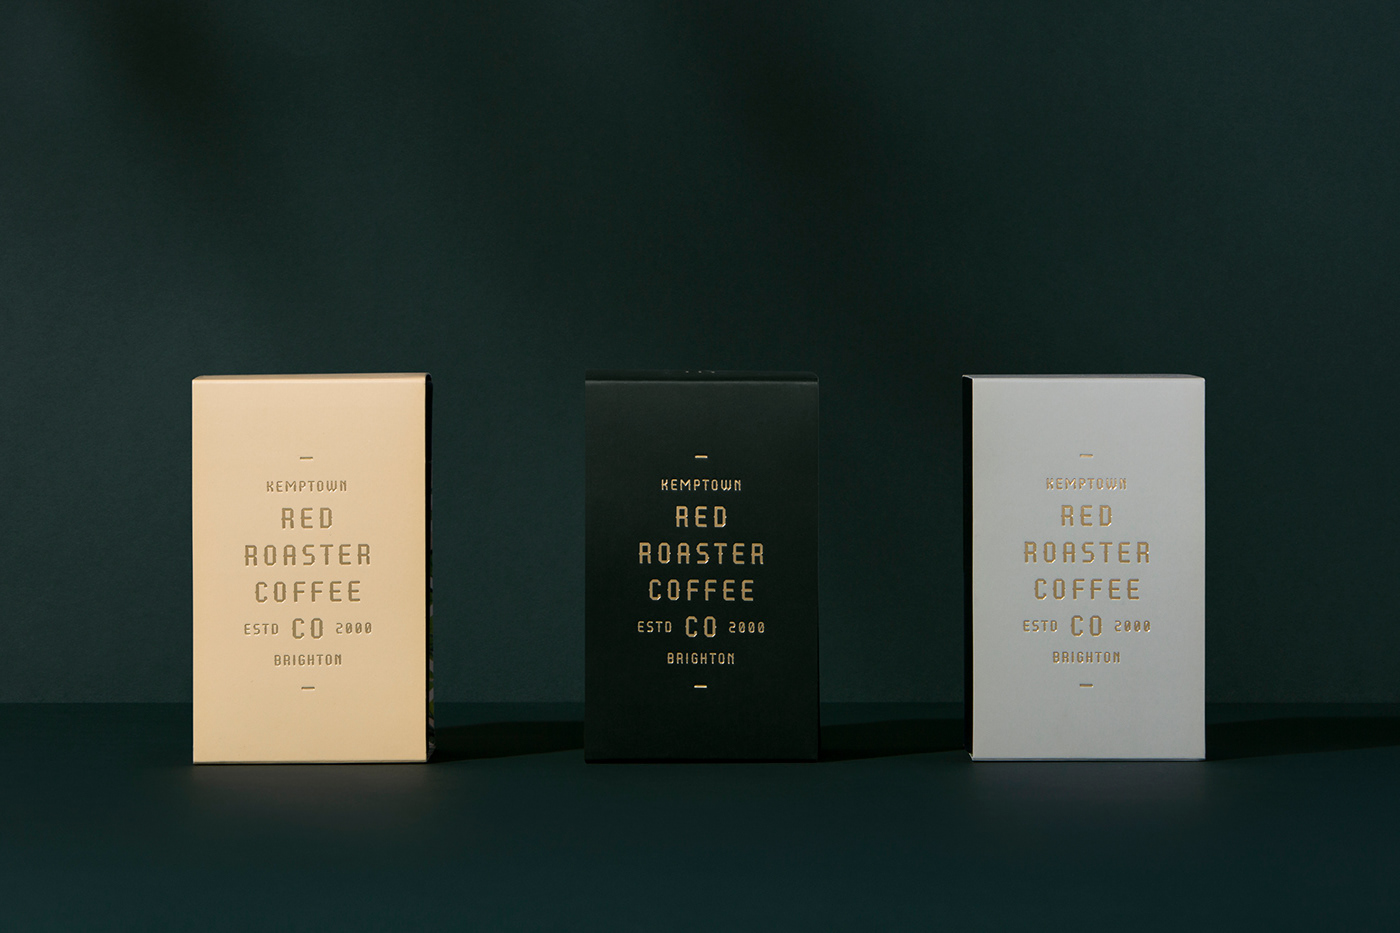 Red Roaster Coffee